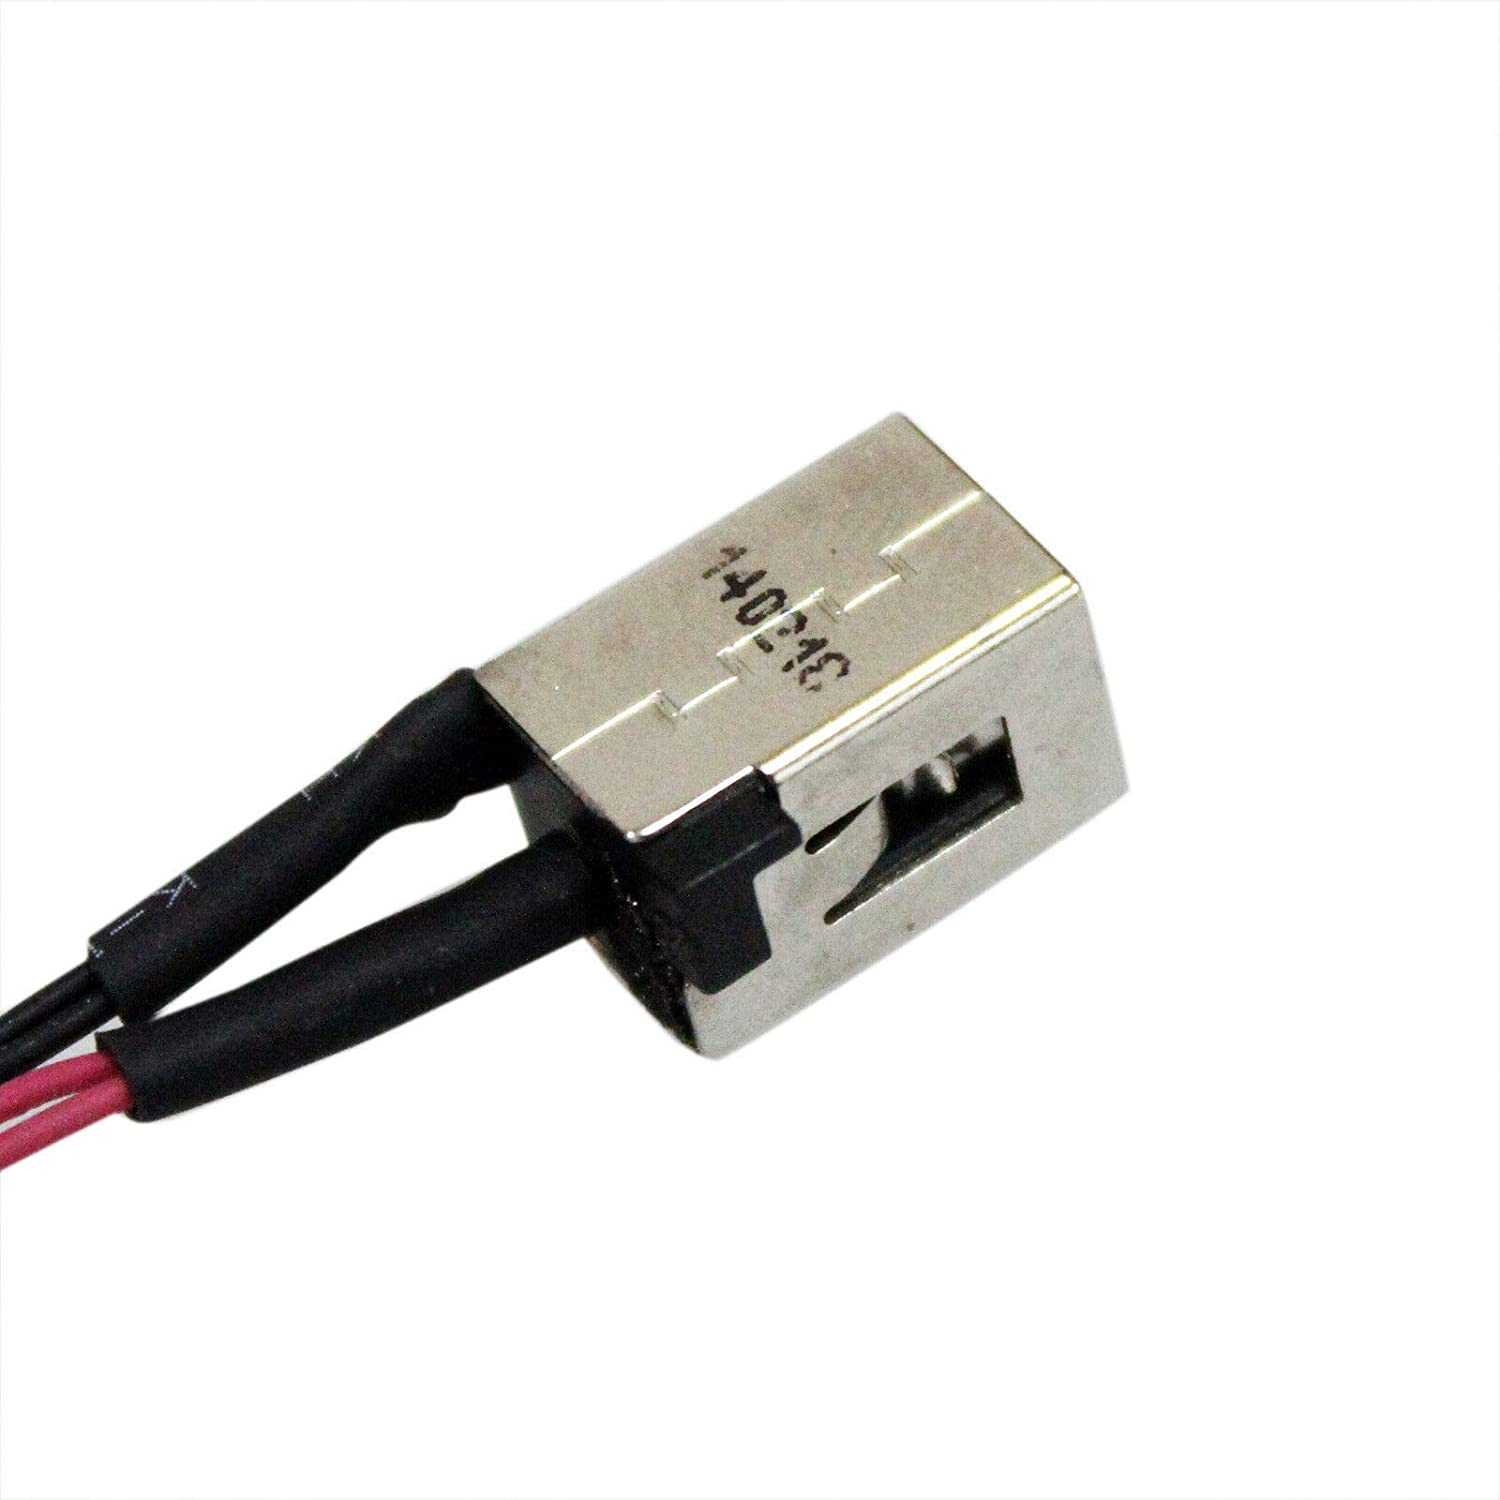 10pcs GinTai DC Power Jack with Cable Socket Plug Port Replacement for Toshiba Satellite CB35 CB30 Series